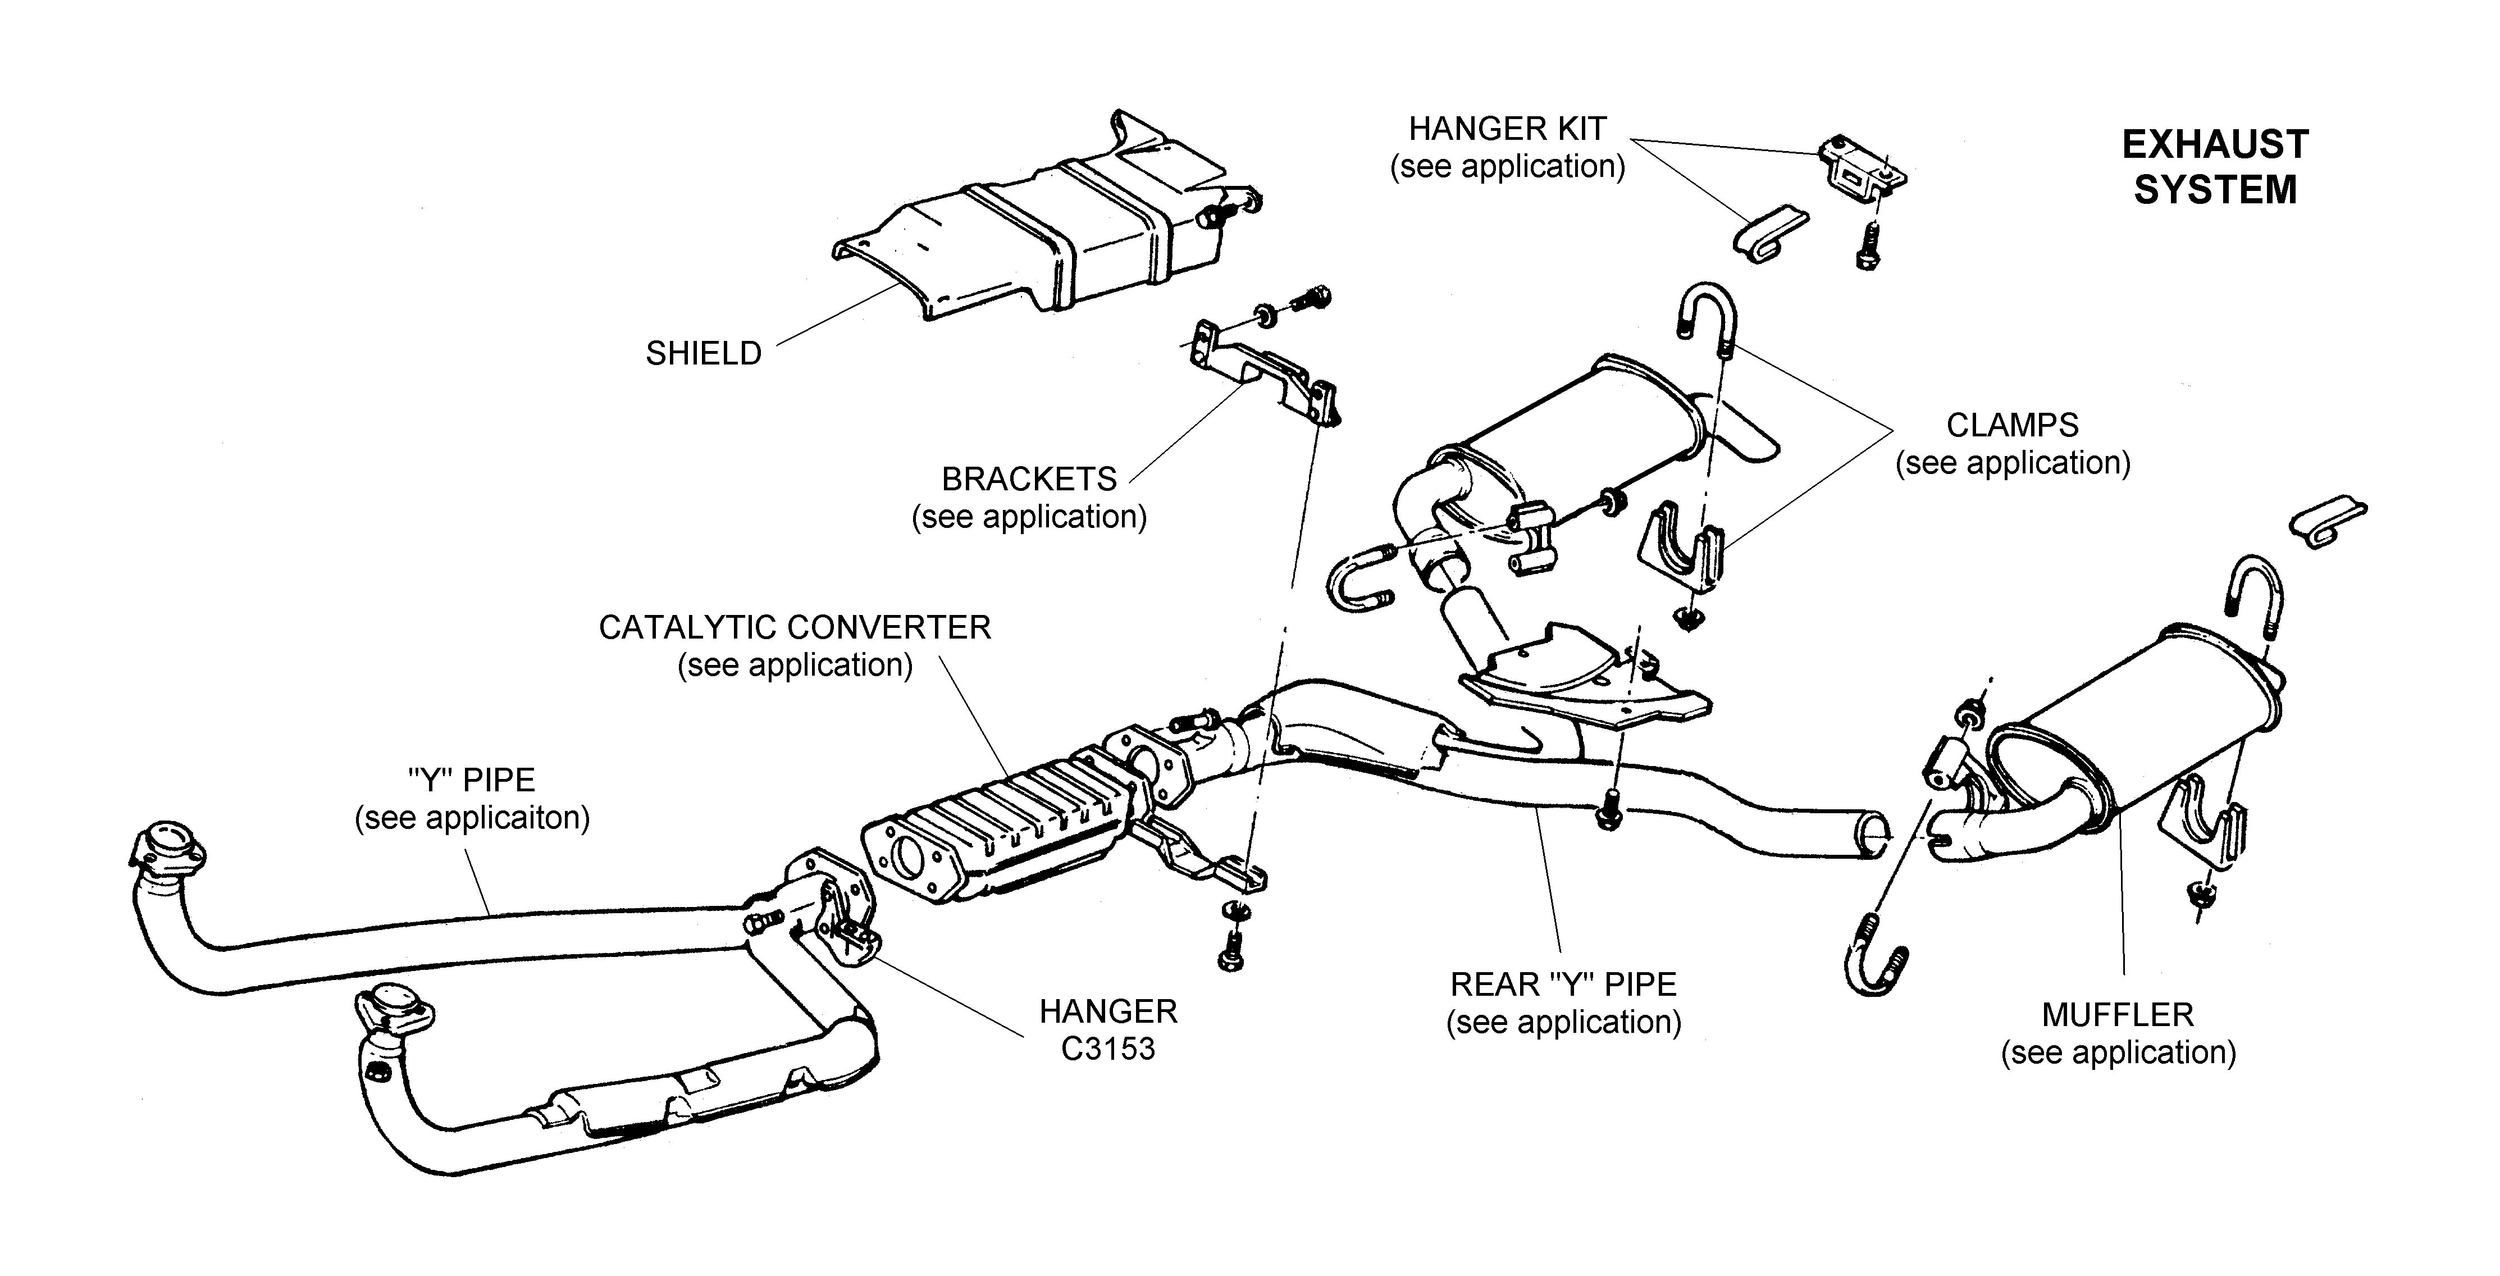 exhaust_systems_amp_hardware_aluminized_exhaust_systems_amp_individual.jpg